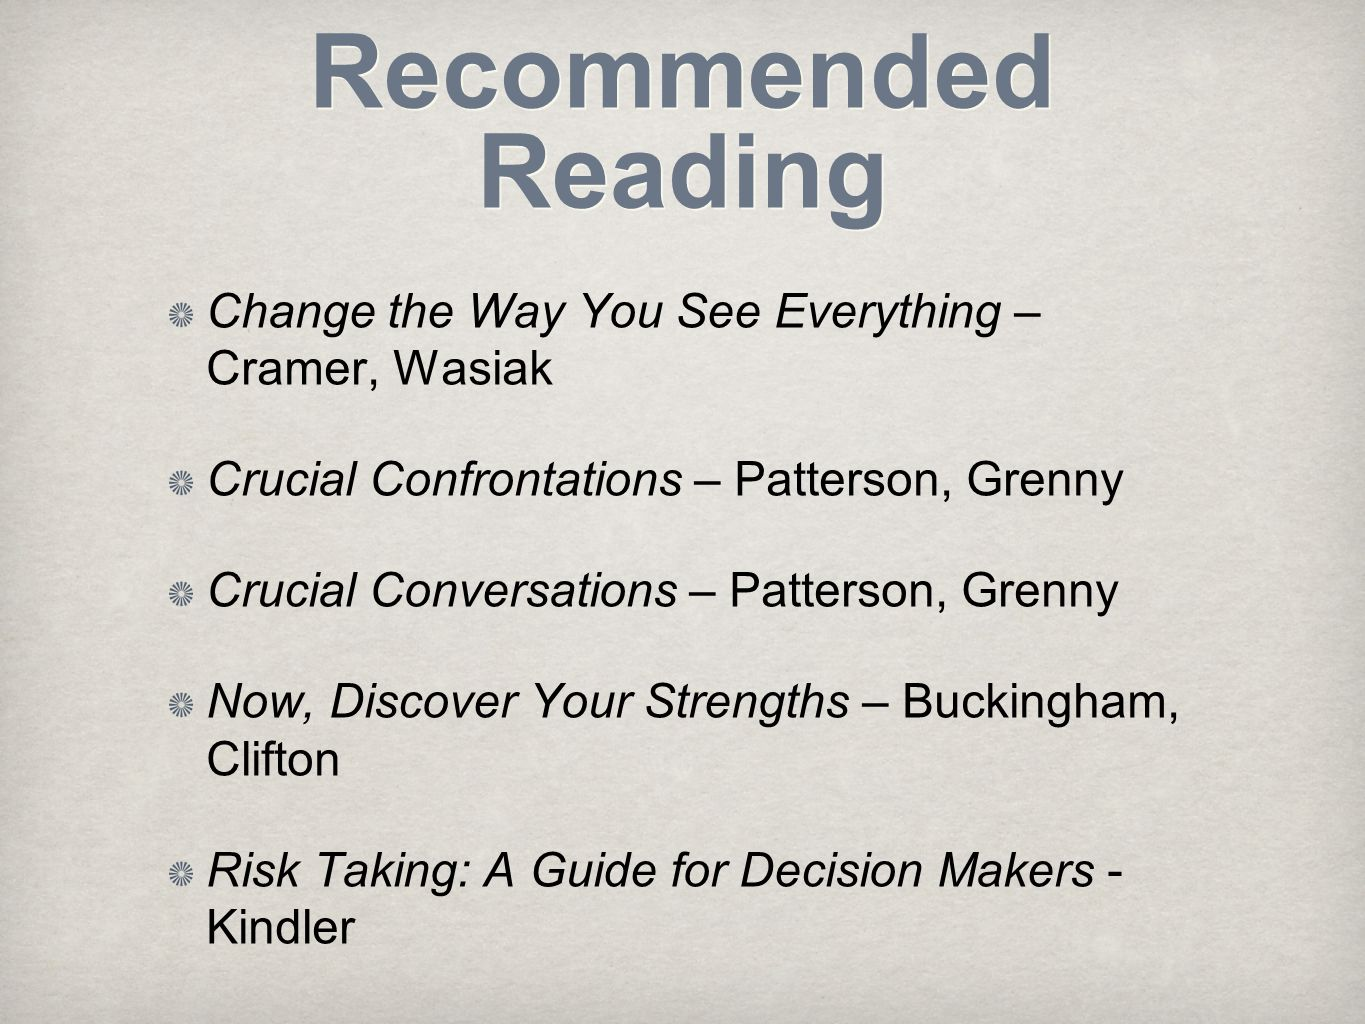 Recommended Reading Change the Way You See Everything – Cramer, Wasiak Crucial Confrontations – Patterson, Grenny Crucial Conversations – Patterson, Grenny Now, Discover Your Strengths – Buckingham, Clifton Risk Taking: A Guide for Decision Makers - Kindler